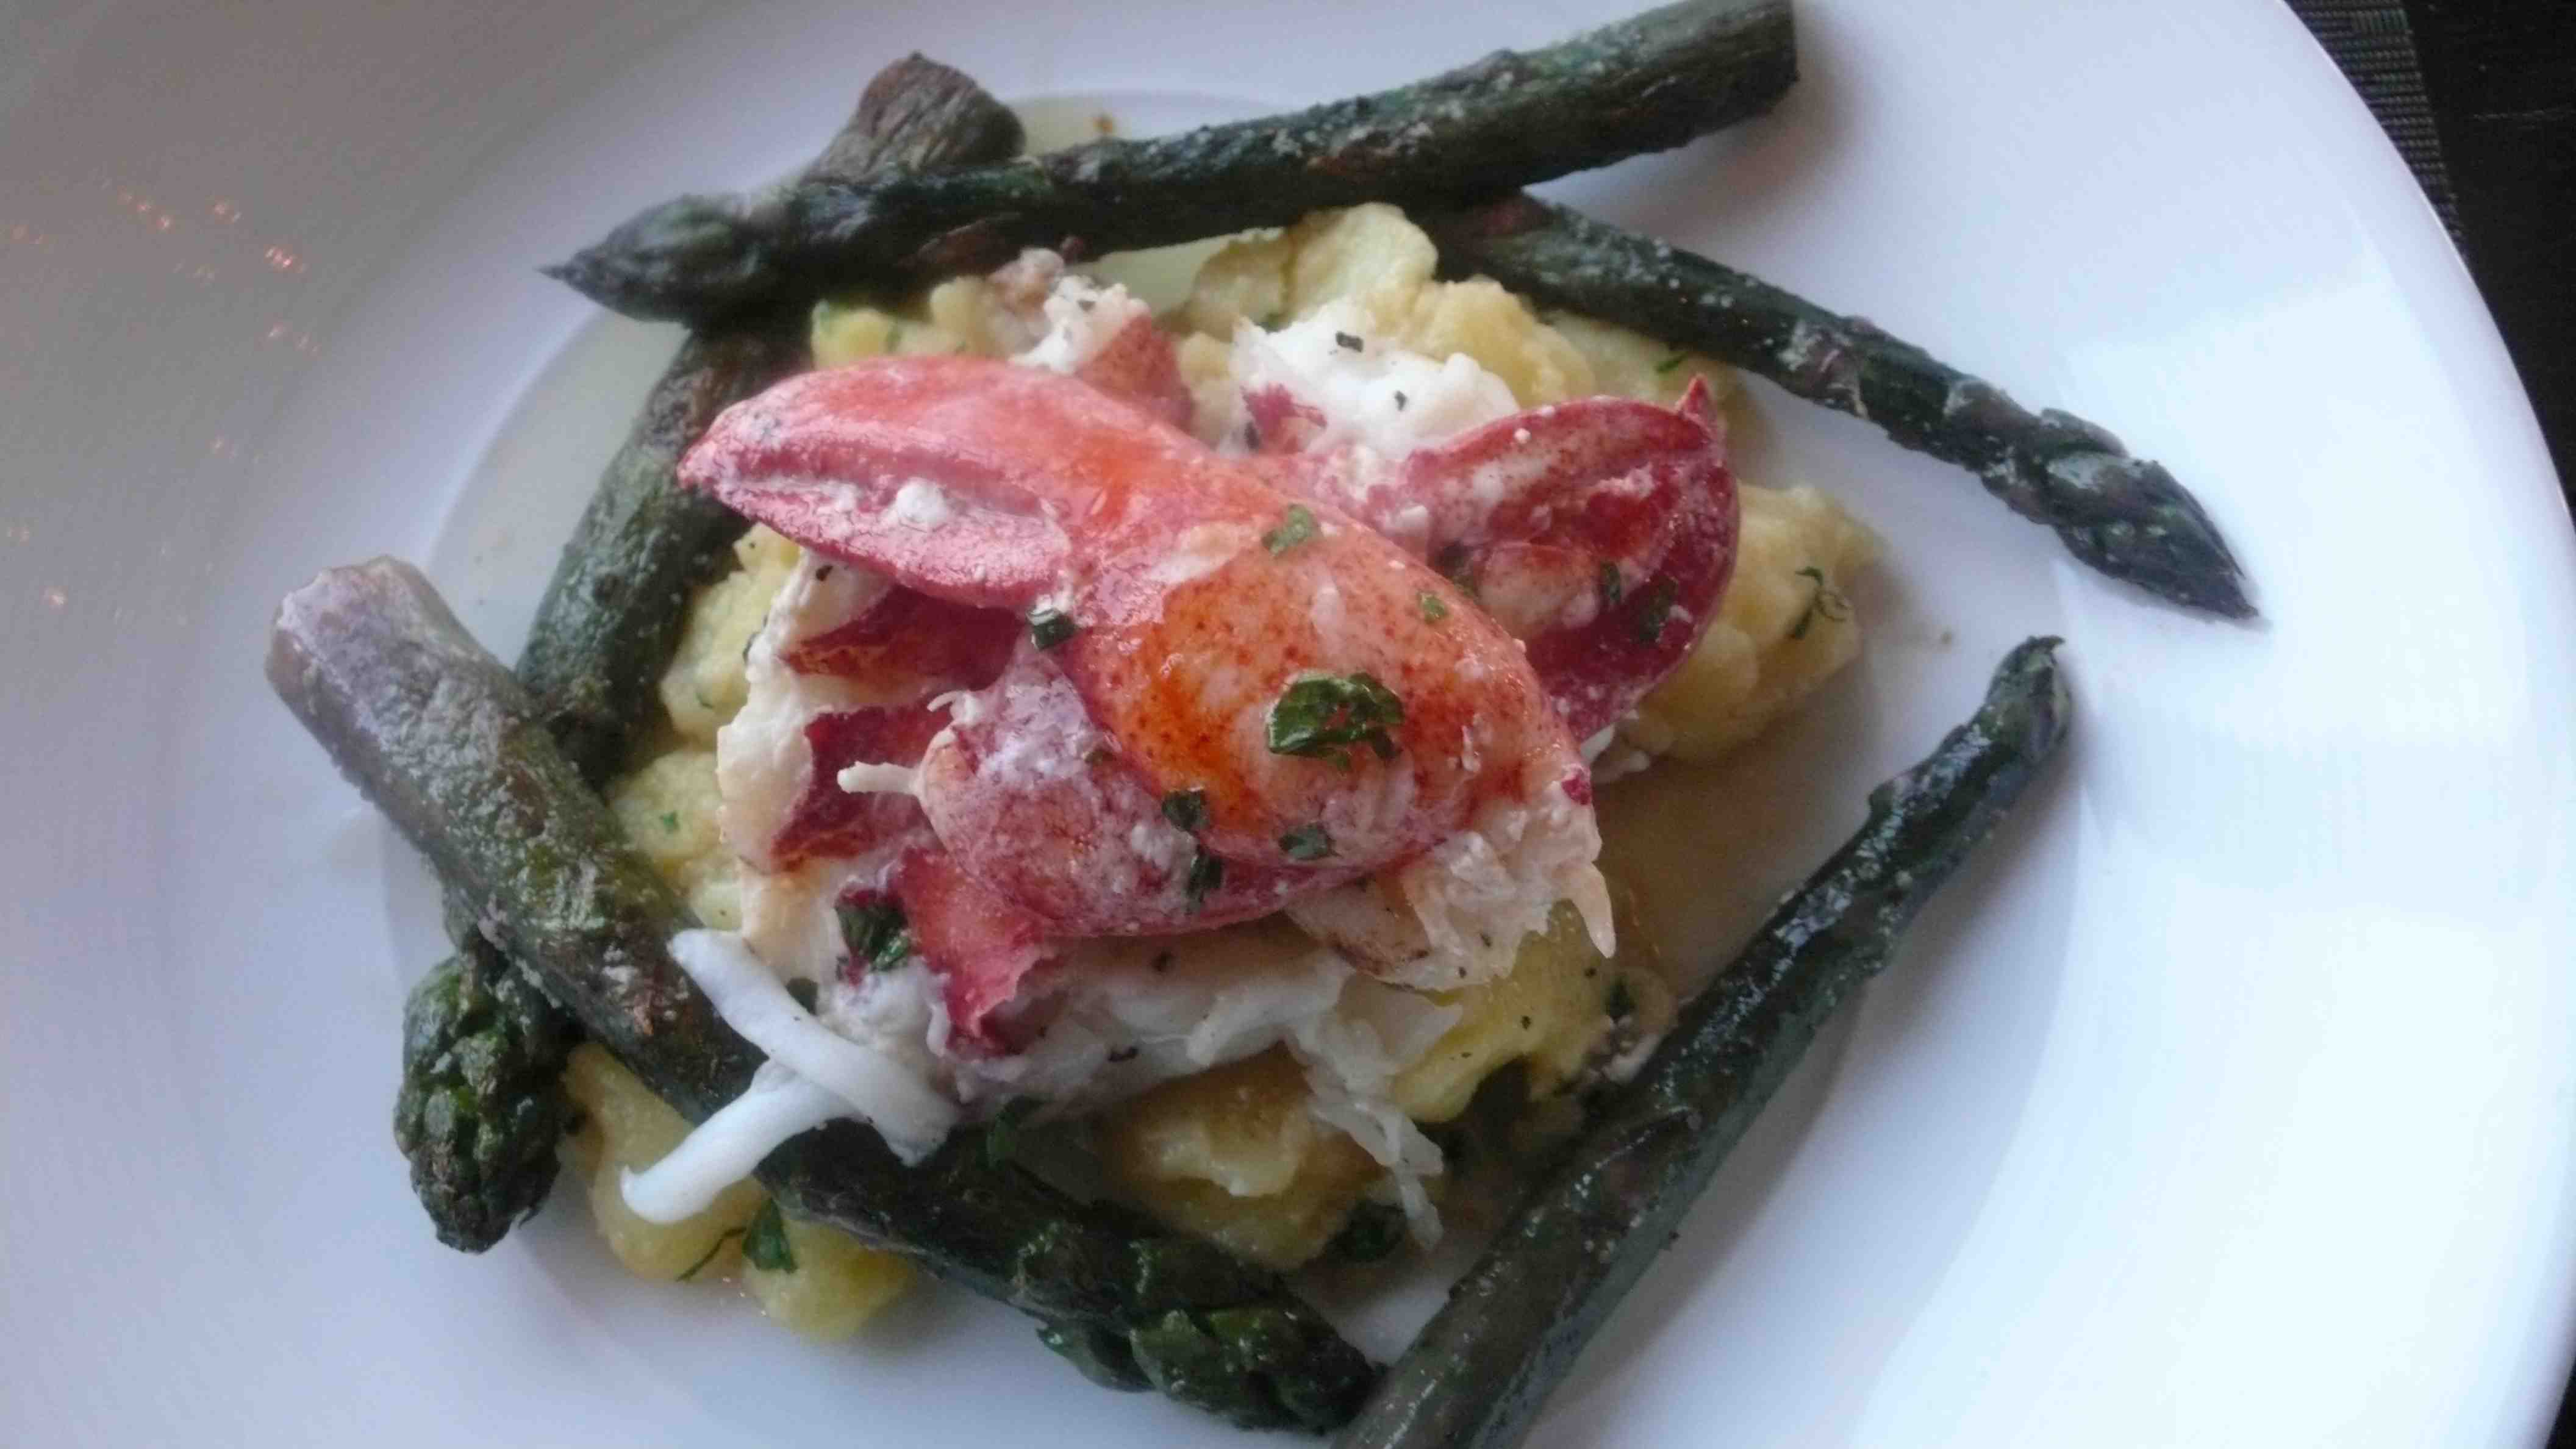 Lobster with asparagus and gnocchi